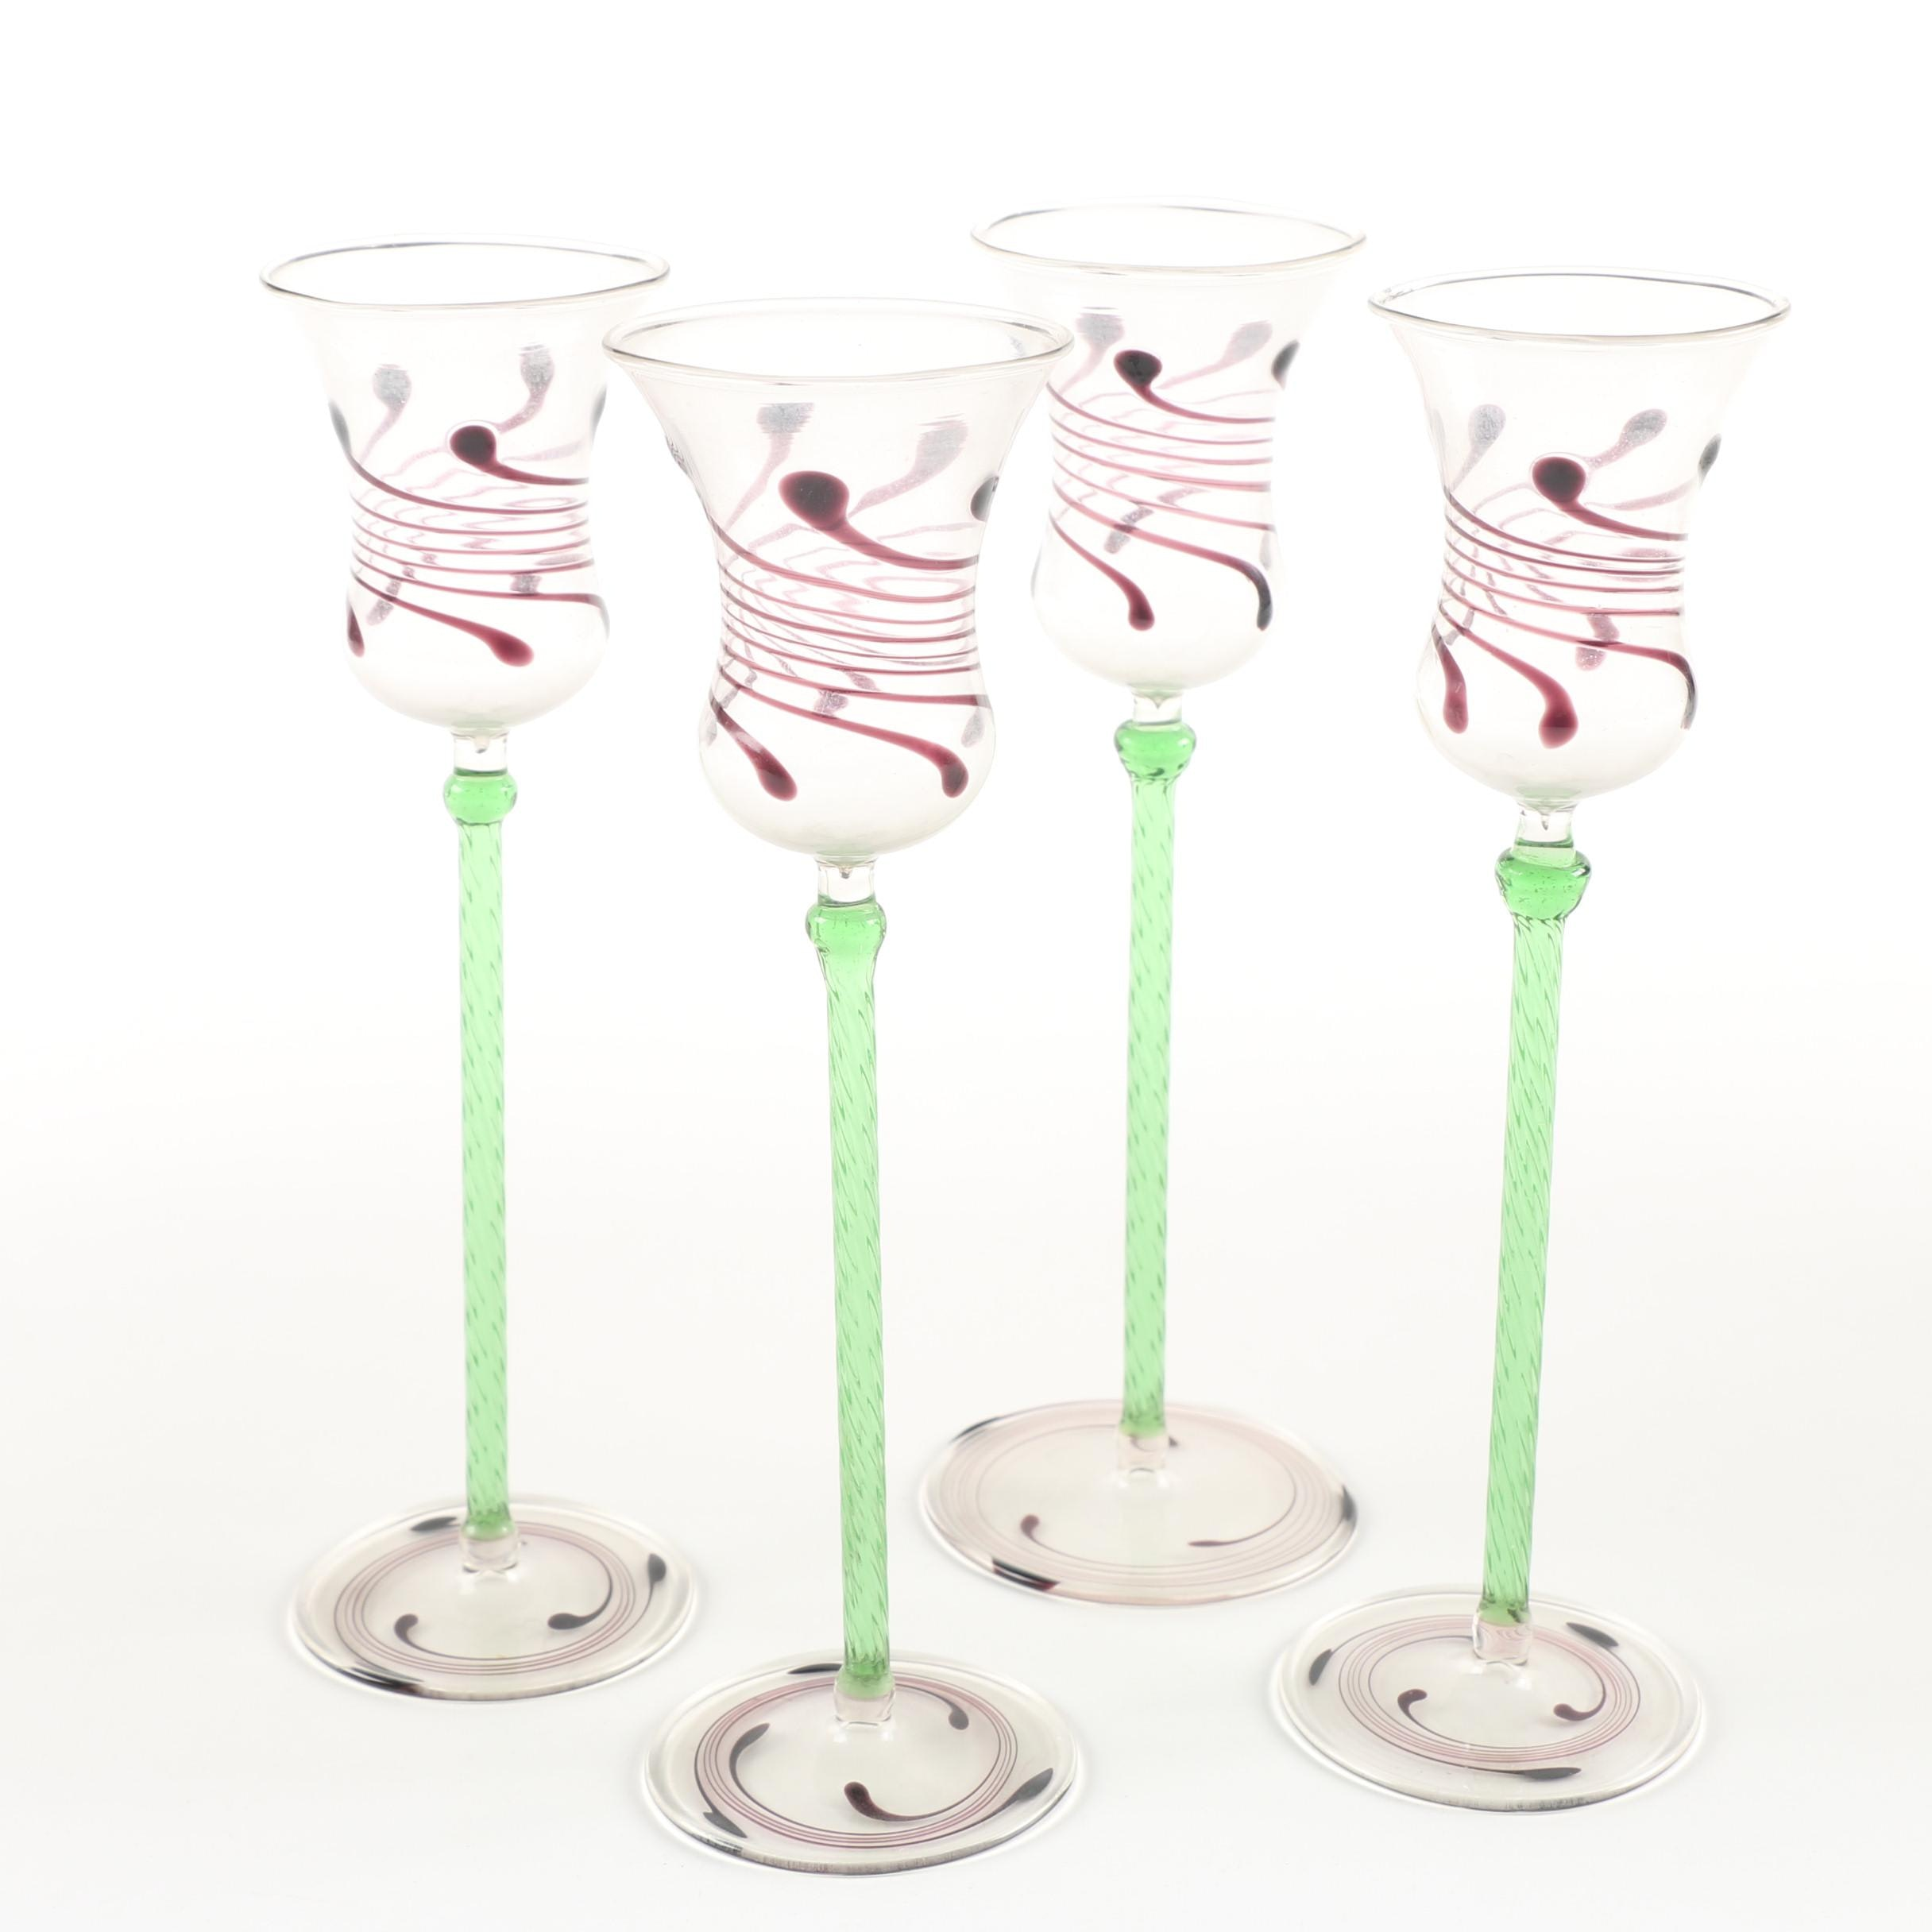 Swirl Motif Blown Glass Cordial Glasses with Green Stems